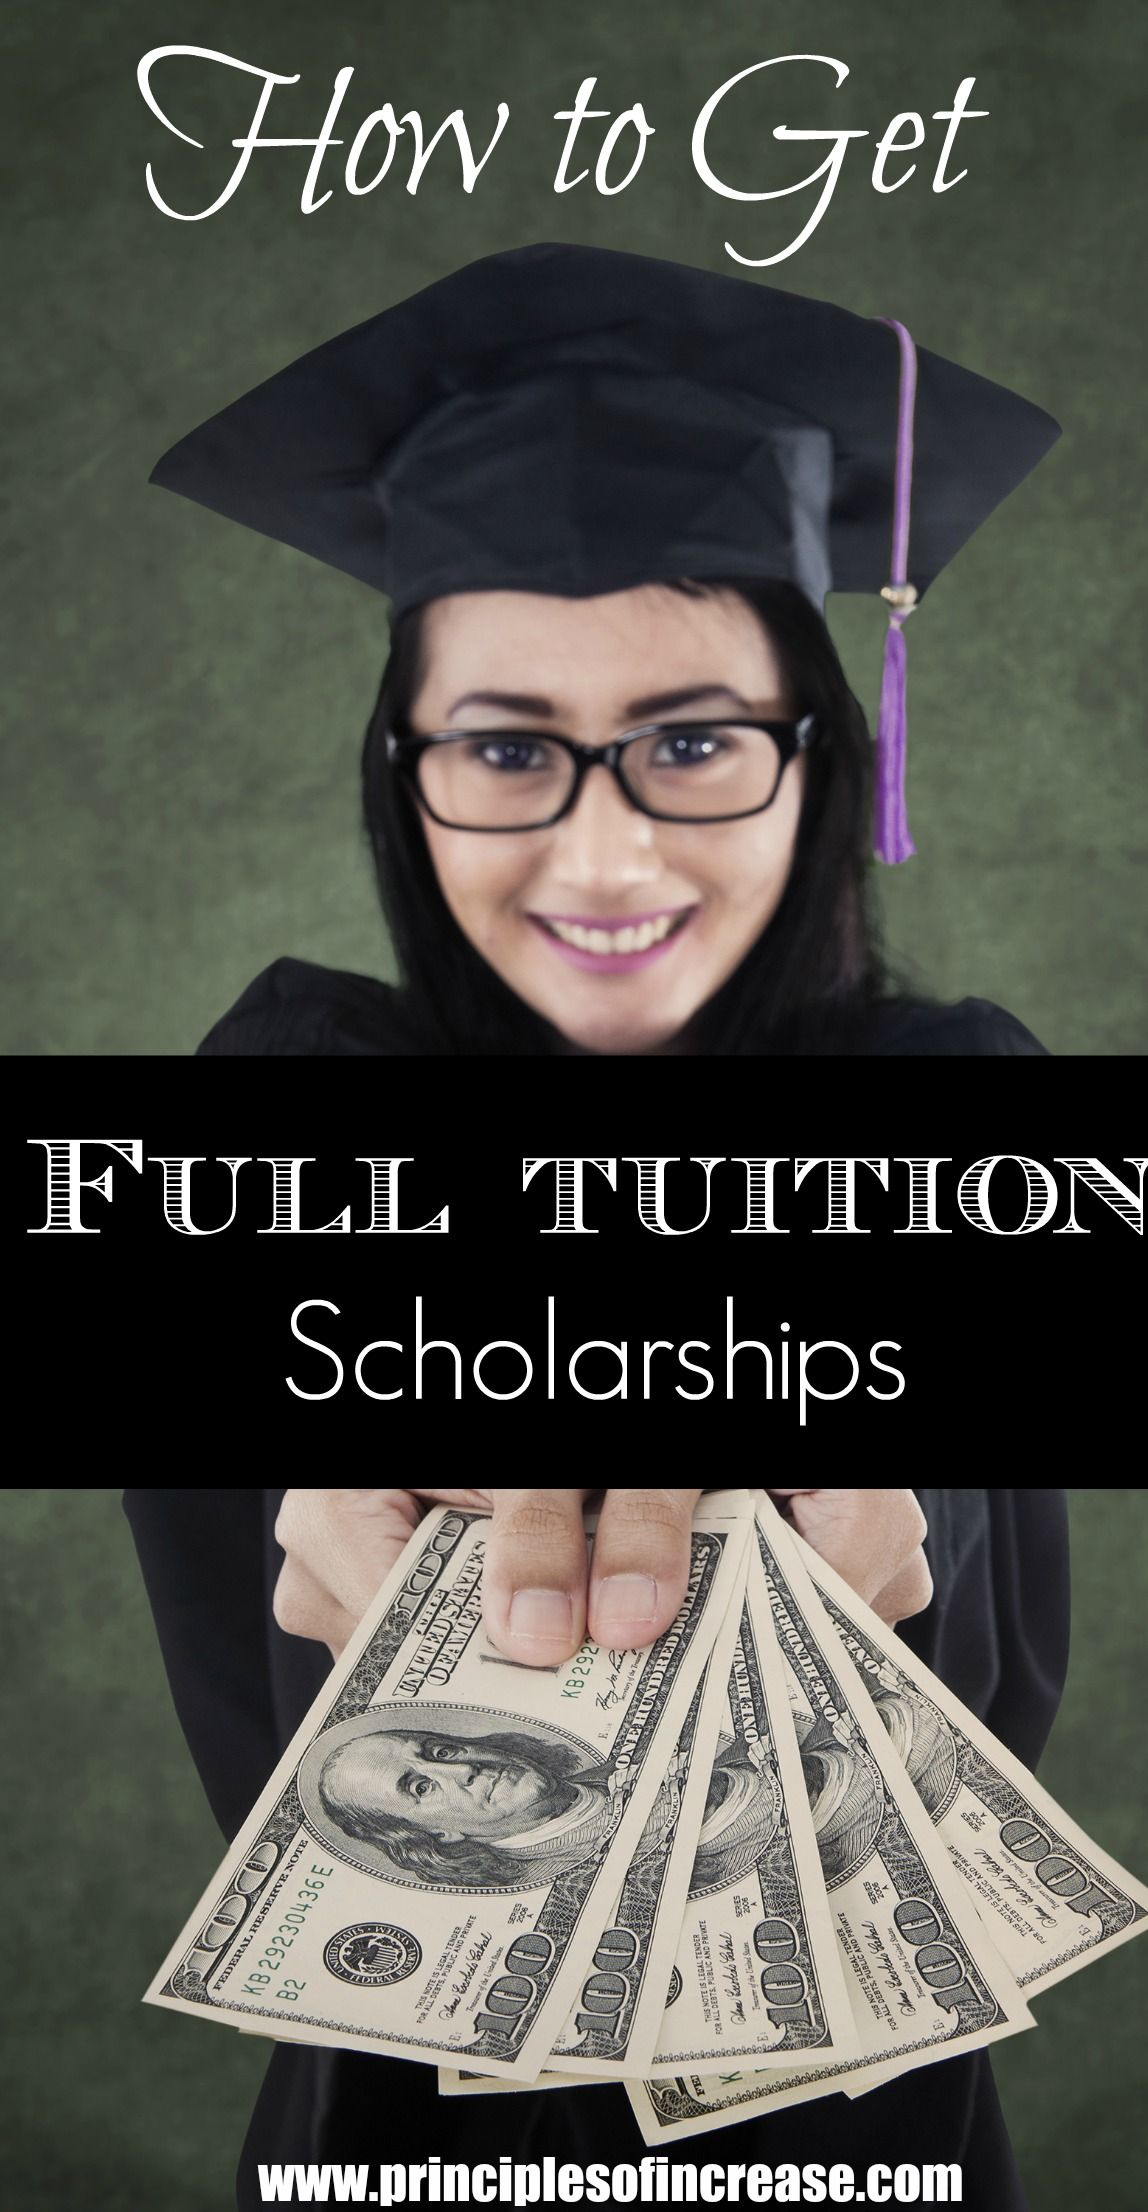 How To Get Full Tuition Scholarships